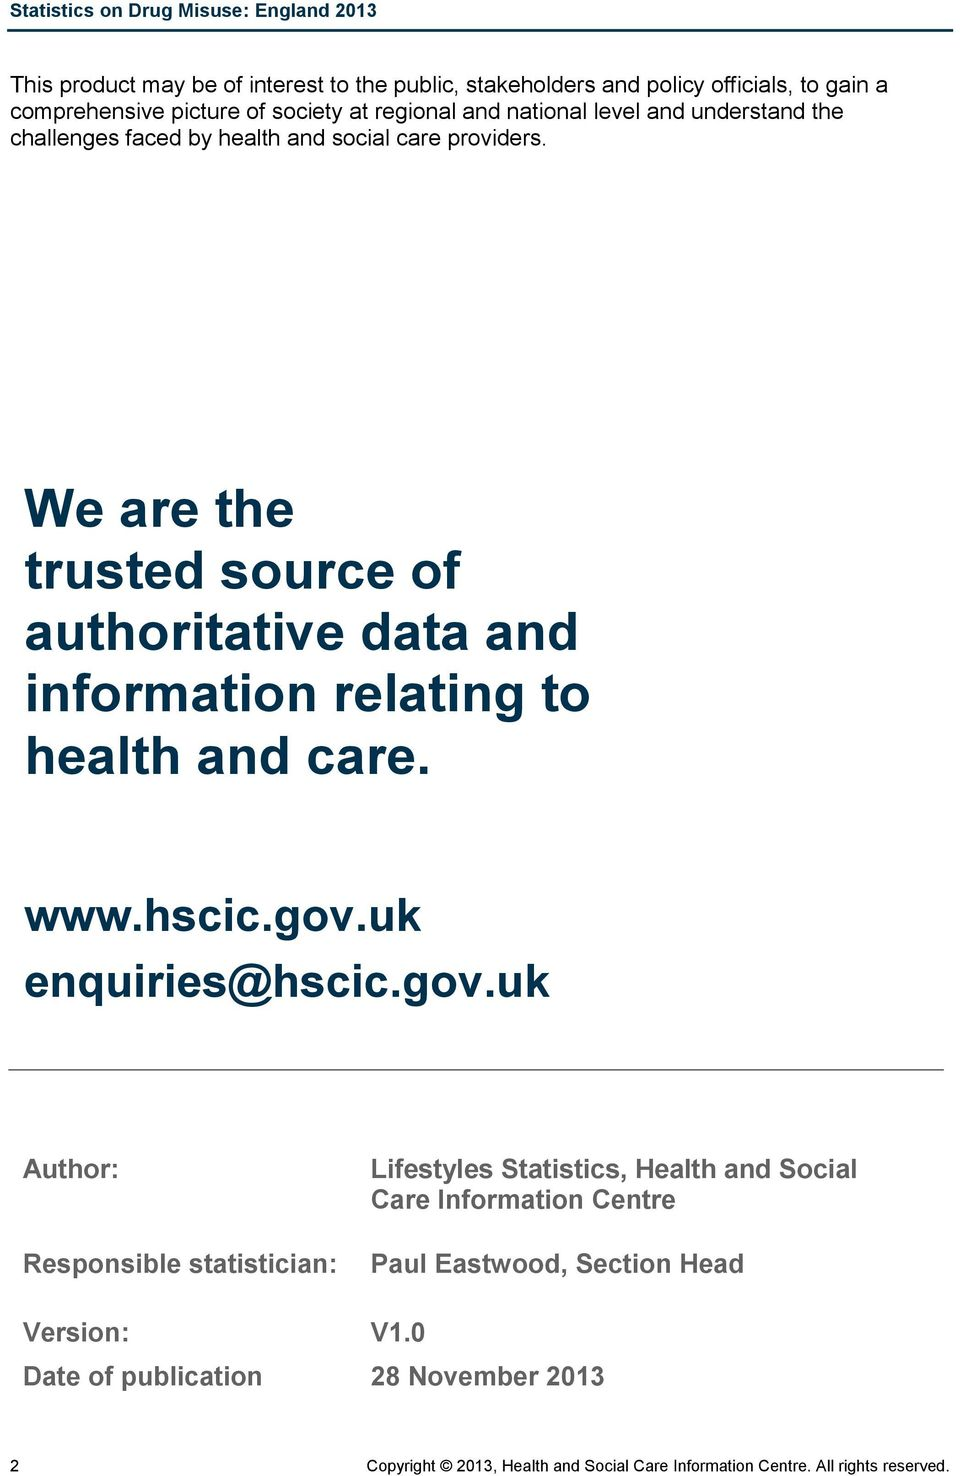 We are the trusted source of authoritative data and information relating to health and care. www.hscic.gov.